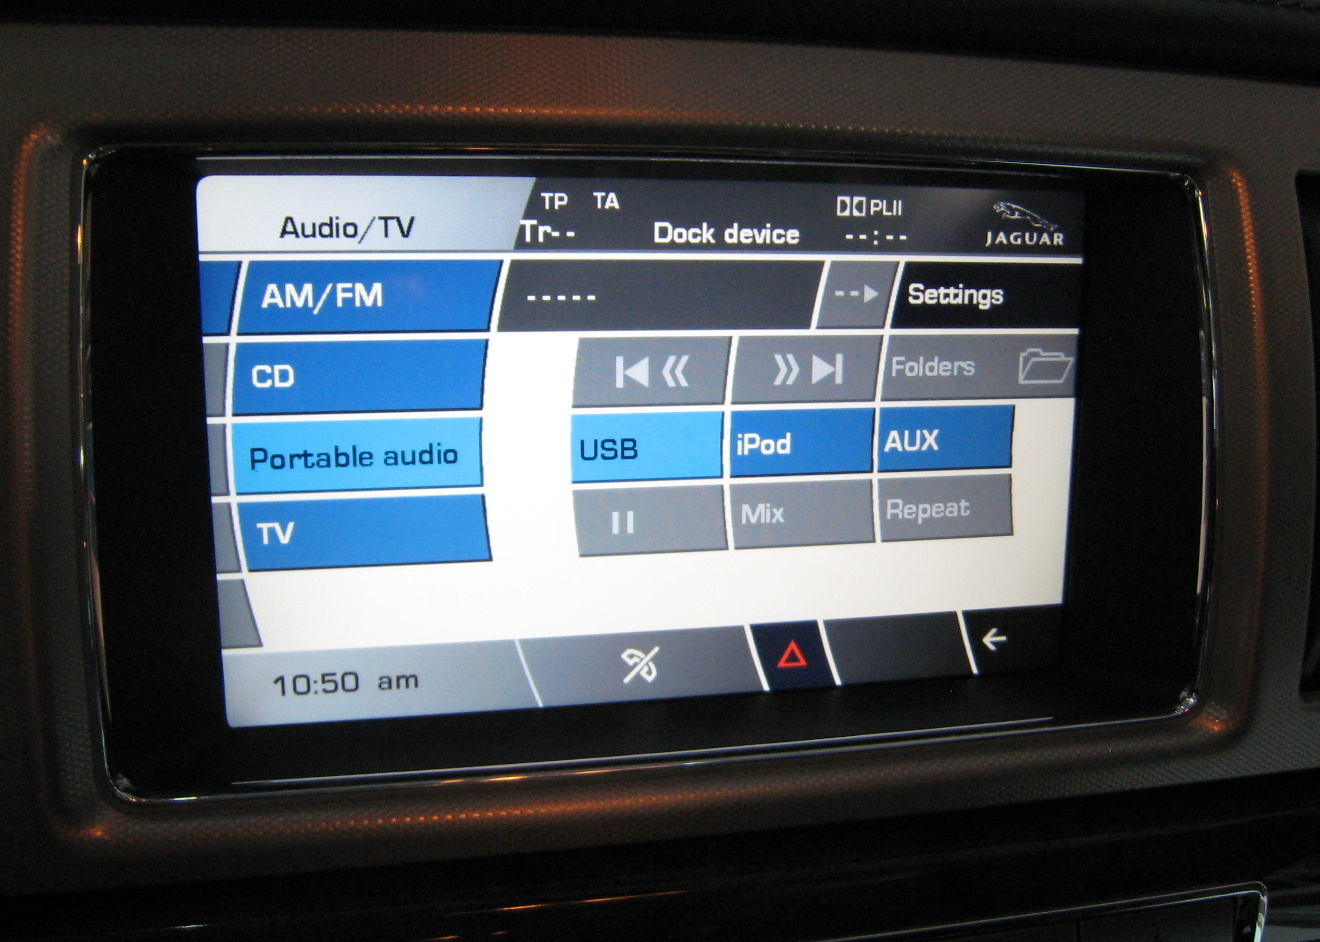 Jaguar's graphic interface in the XF